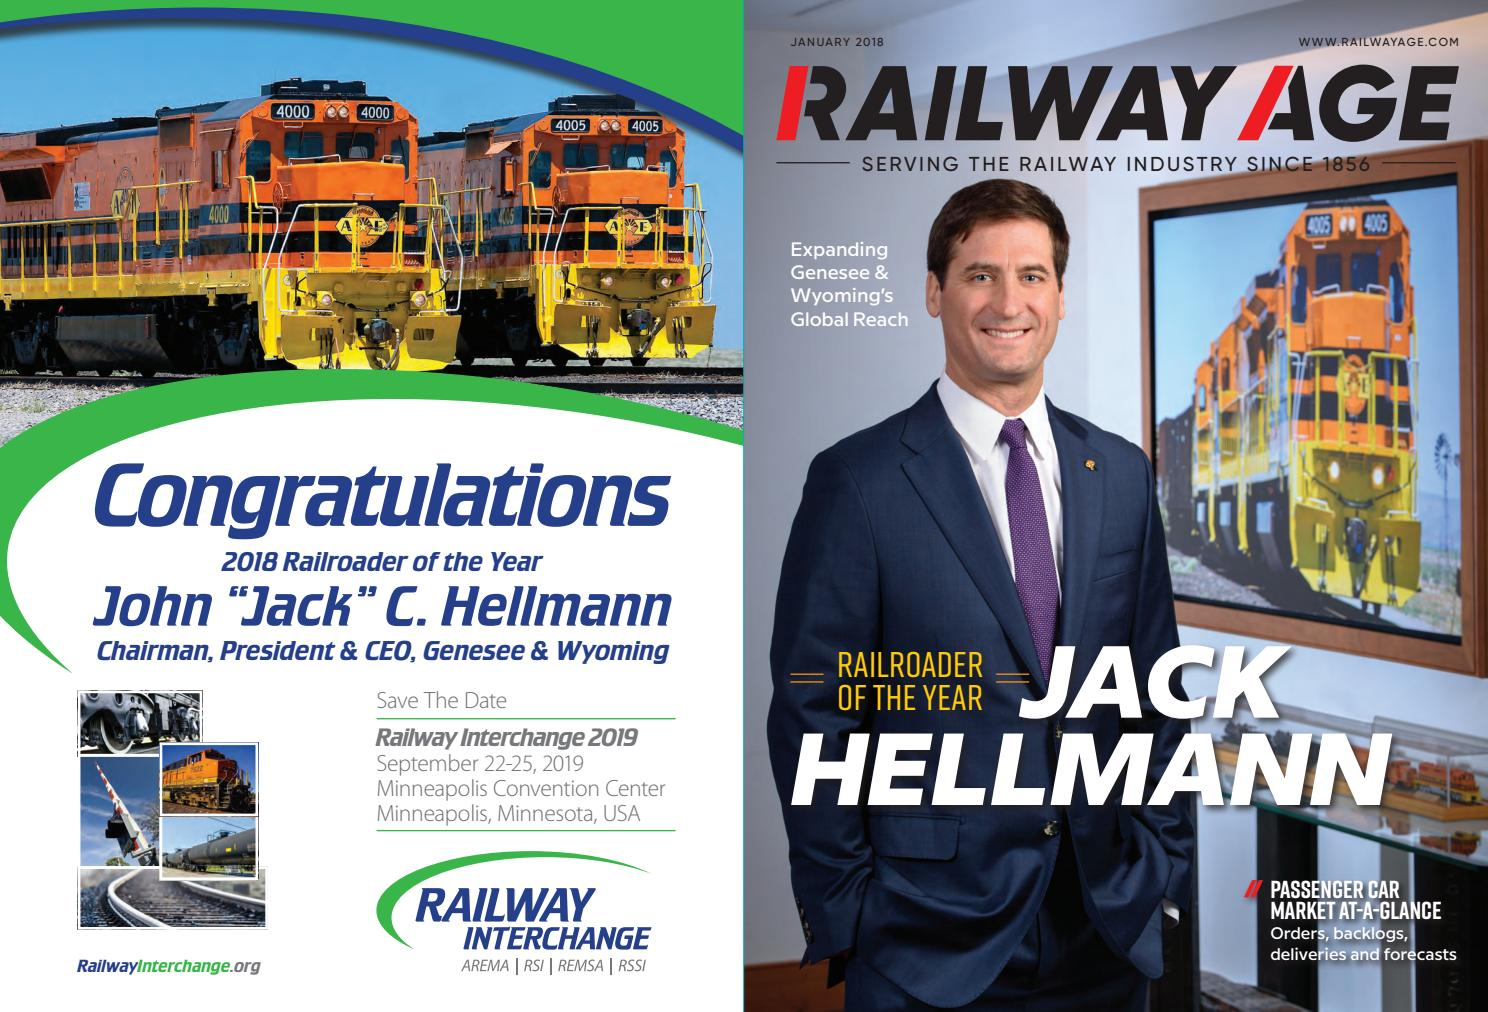 Railway Age January 2018 by Railway Age - issuu